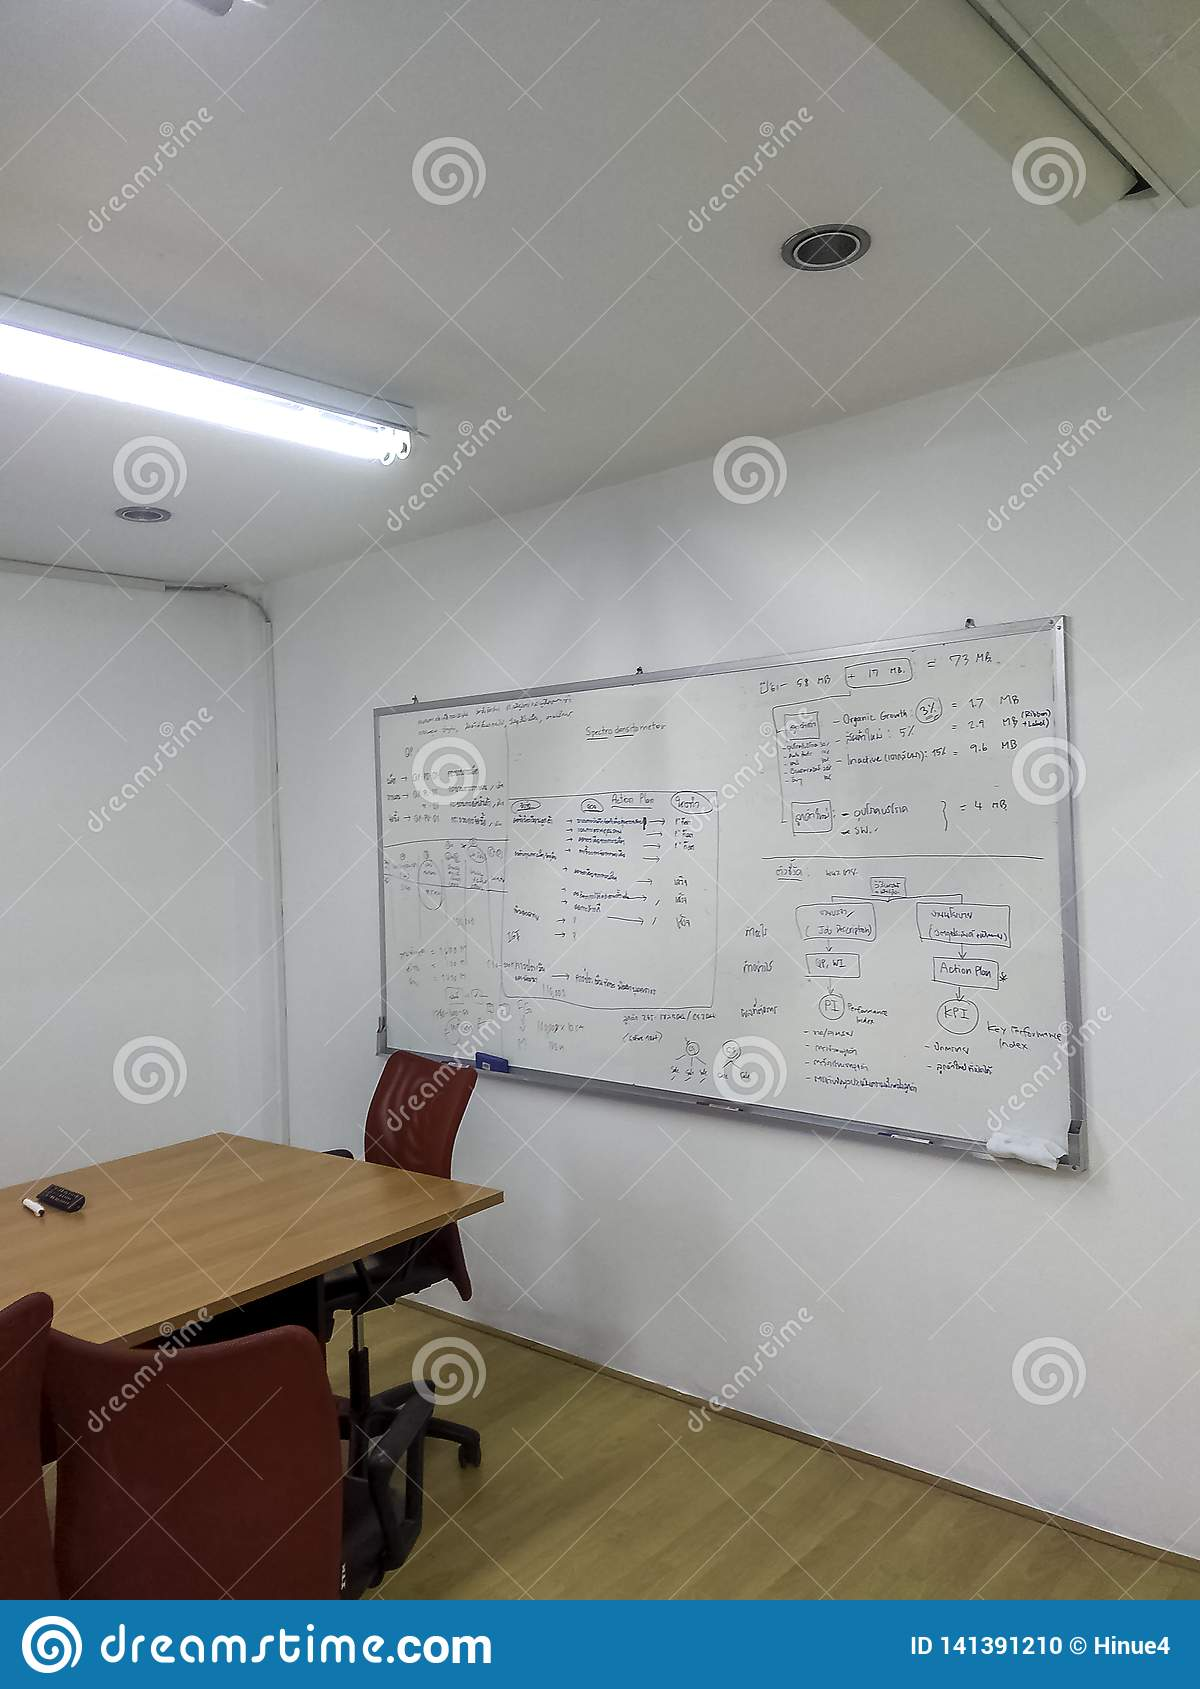 Meeting room for office workers